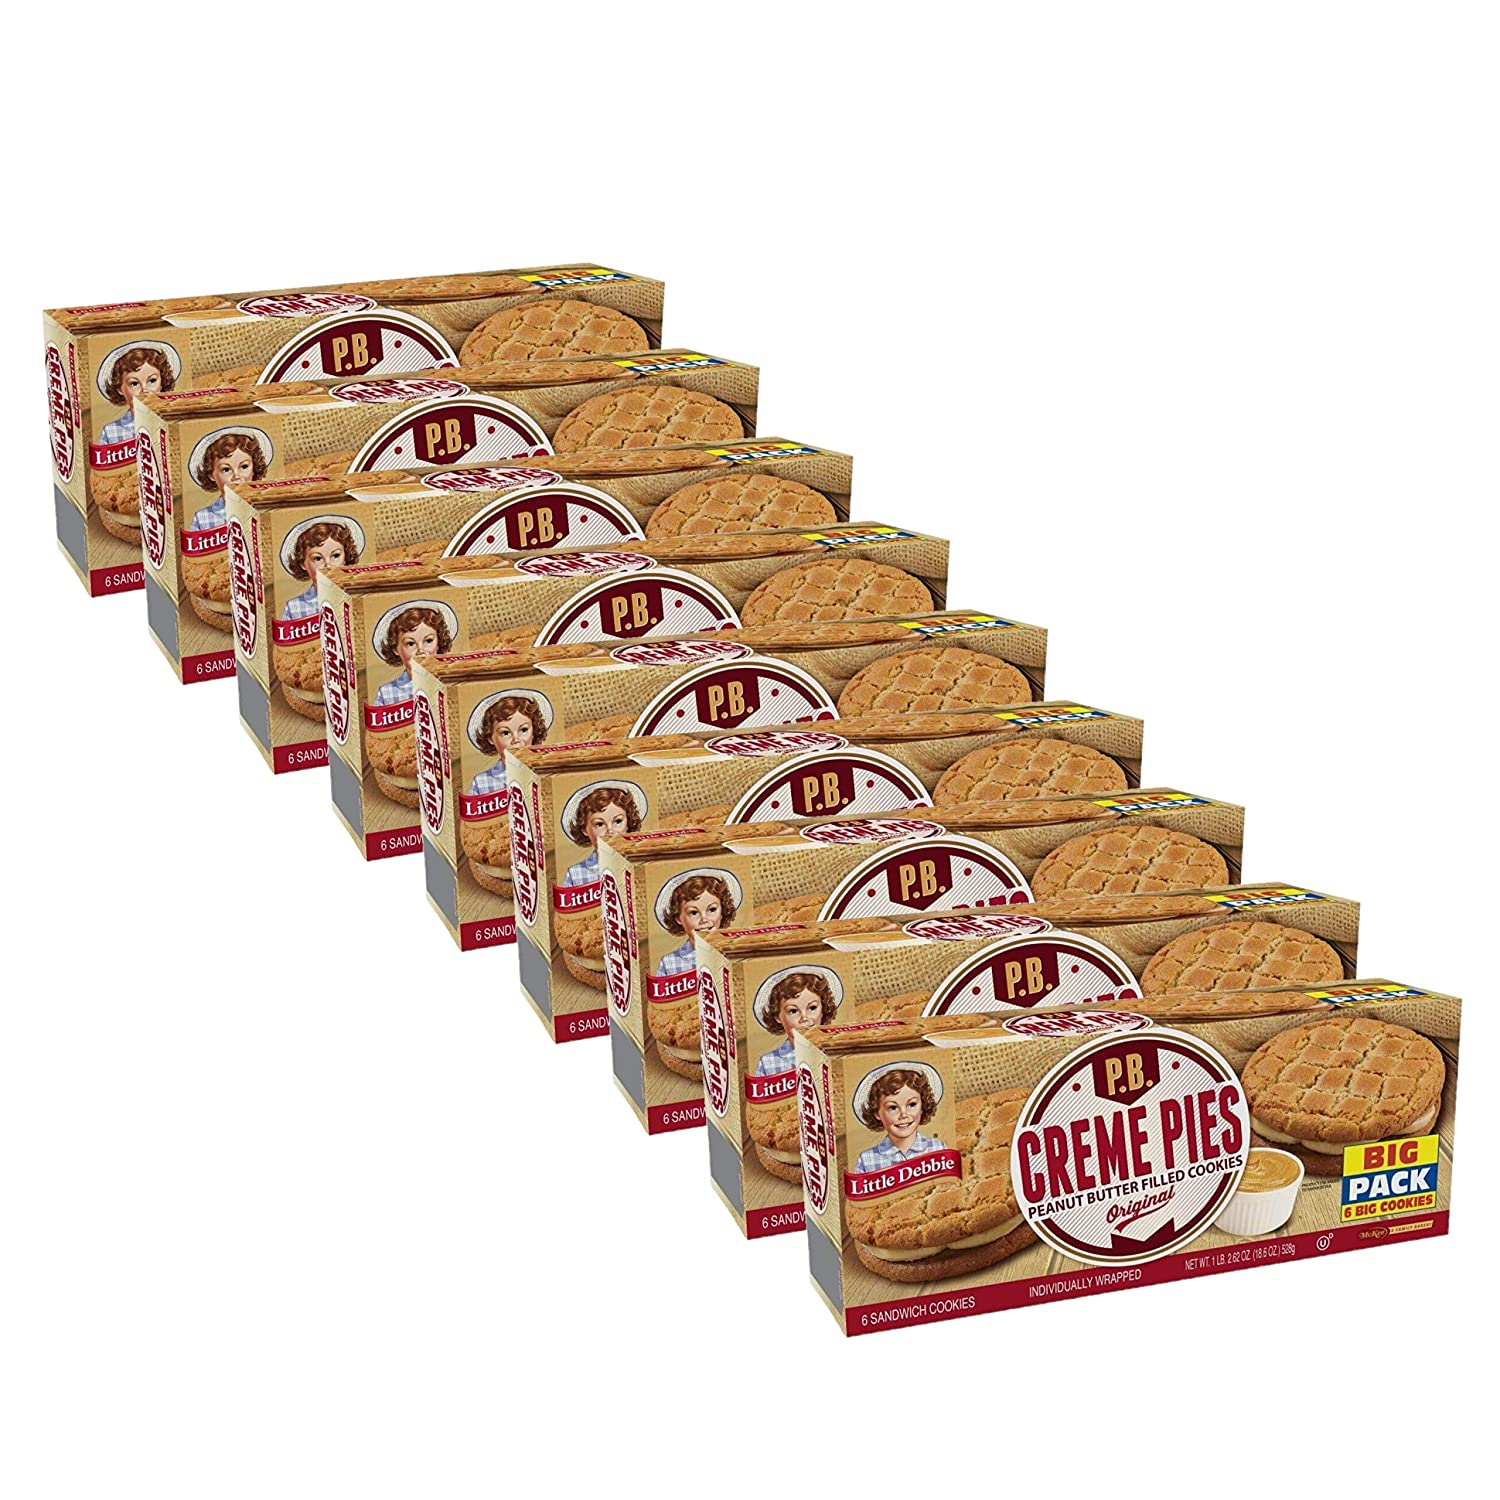 Little Debbie Peanut Butter Creme Pies, 9 Big Pack Boxes, 54 Individually Wrapped Sandwich Cookies